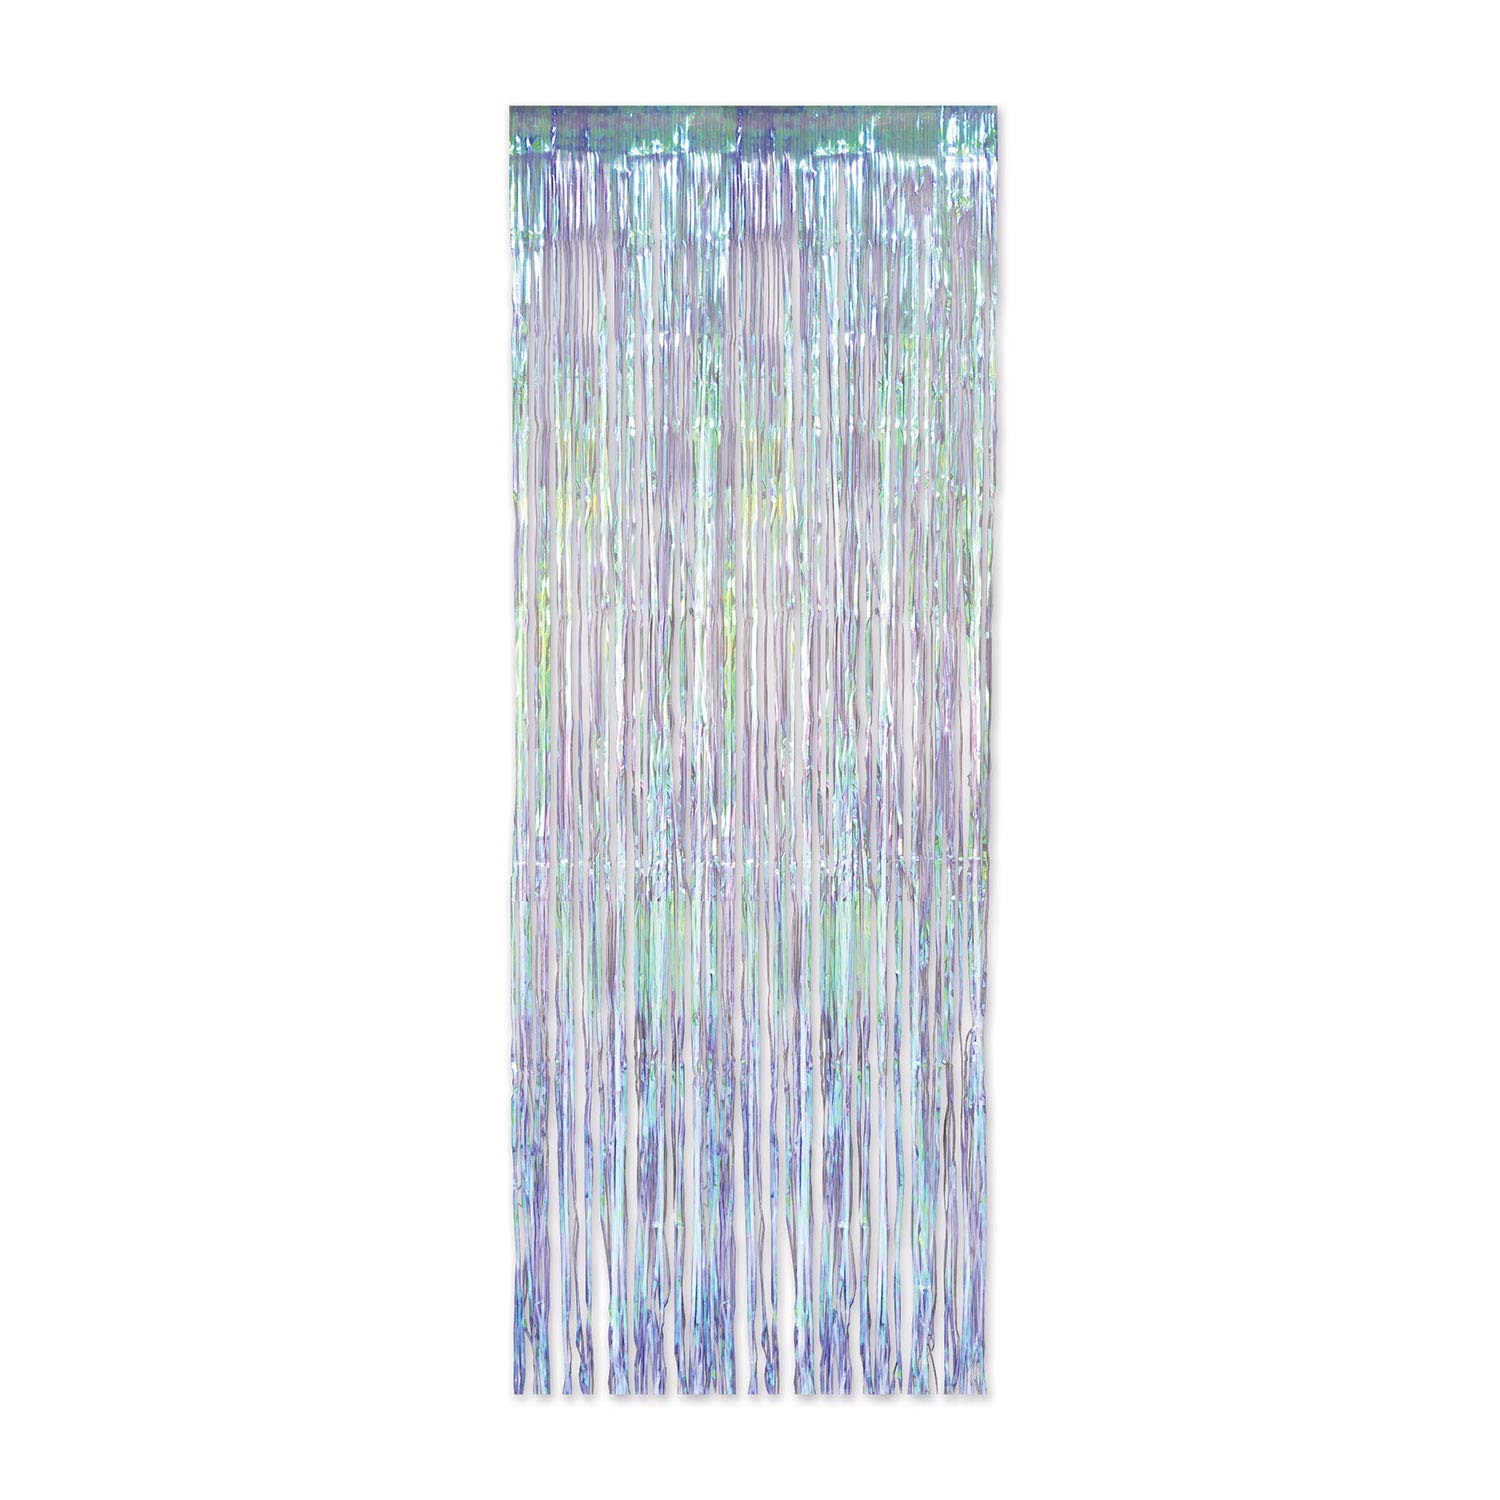 Beistle Iridescent Party Supplies, 1 Ply Iridescent Fringe Curtain 3 Feet x 8 Feet, Pack of 6